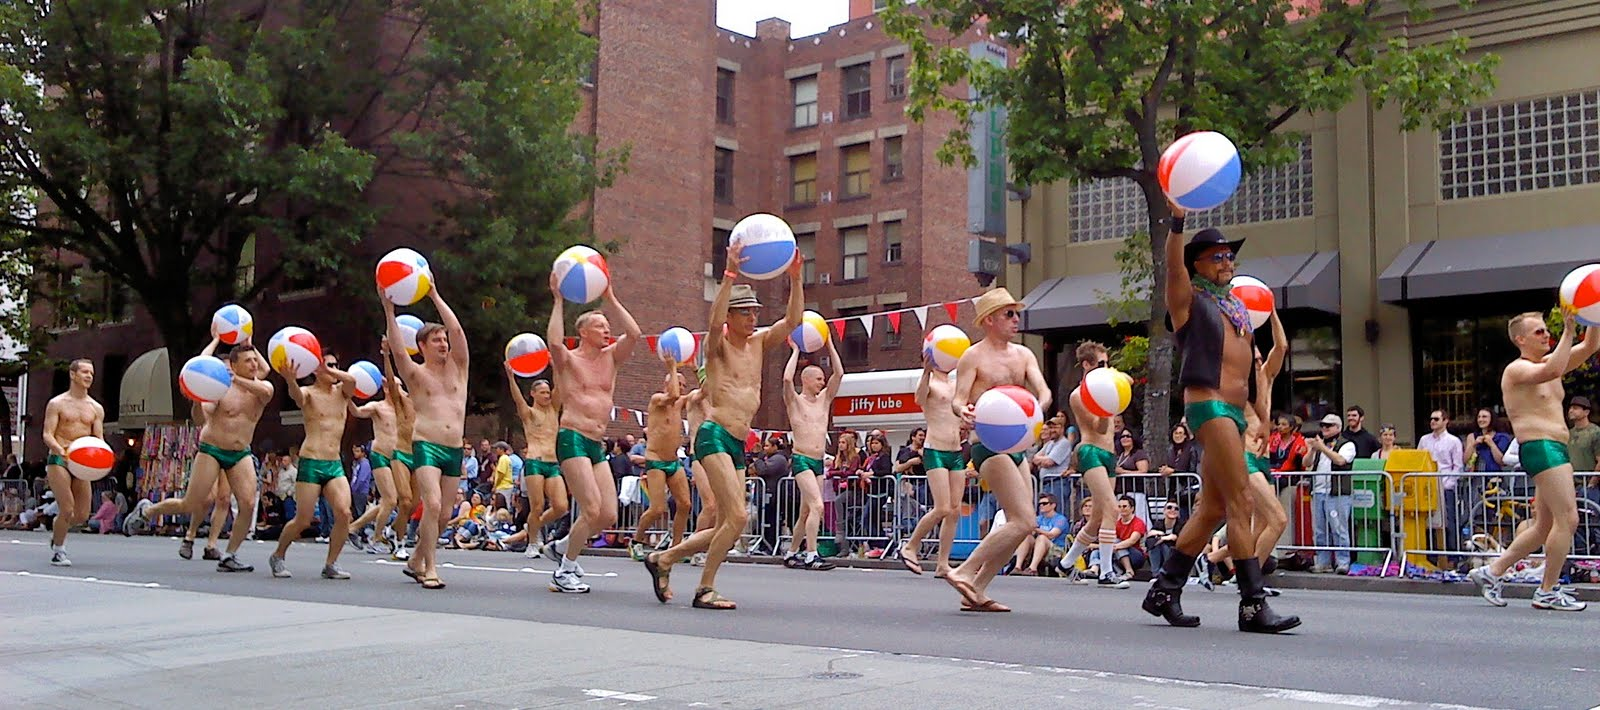 Seattle nudist parade